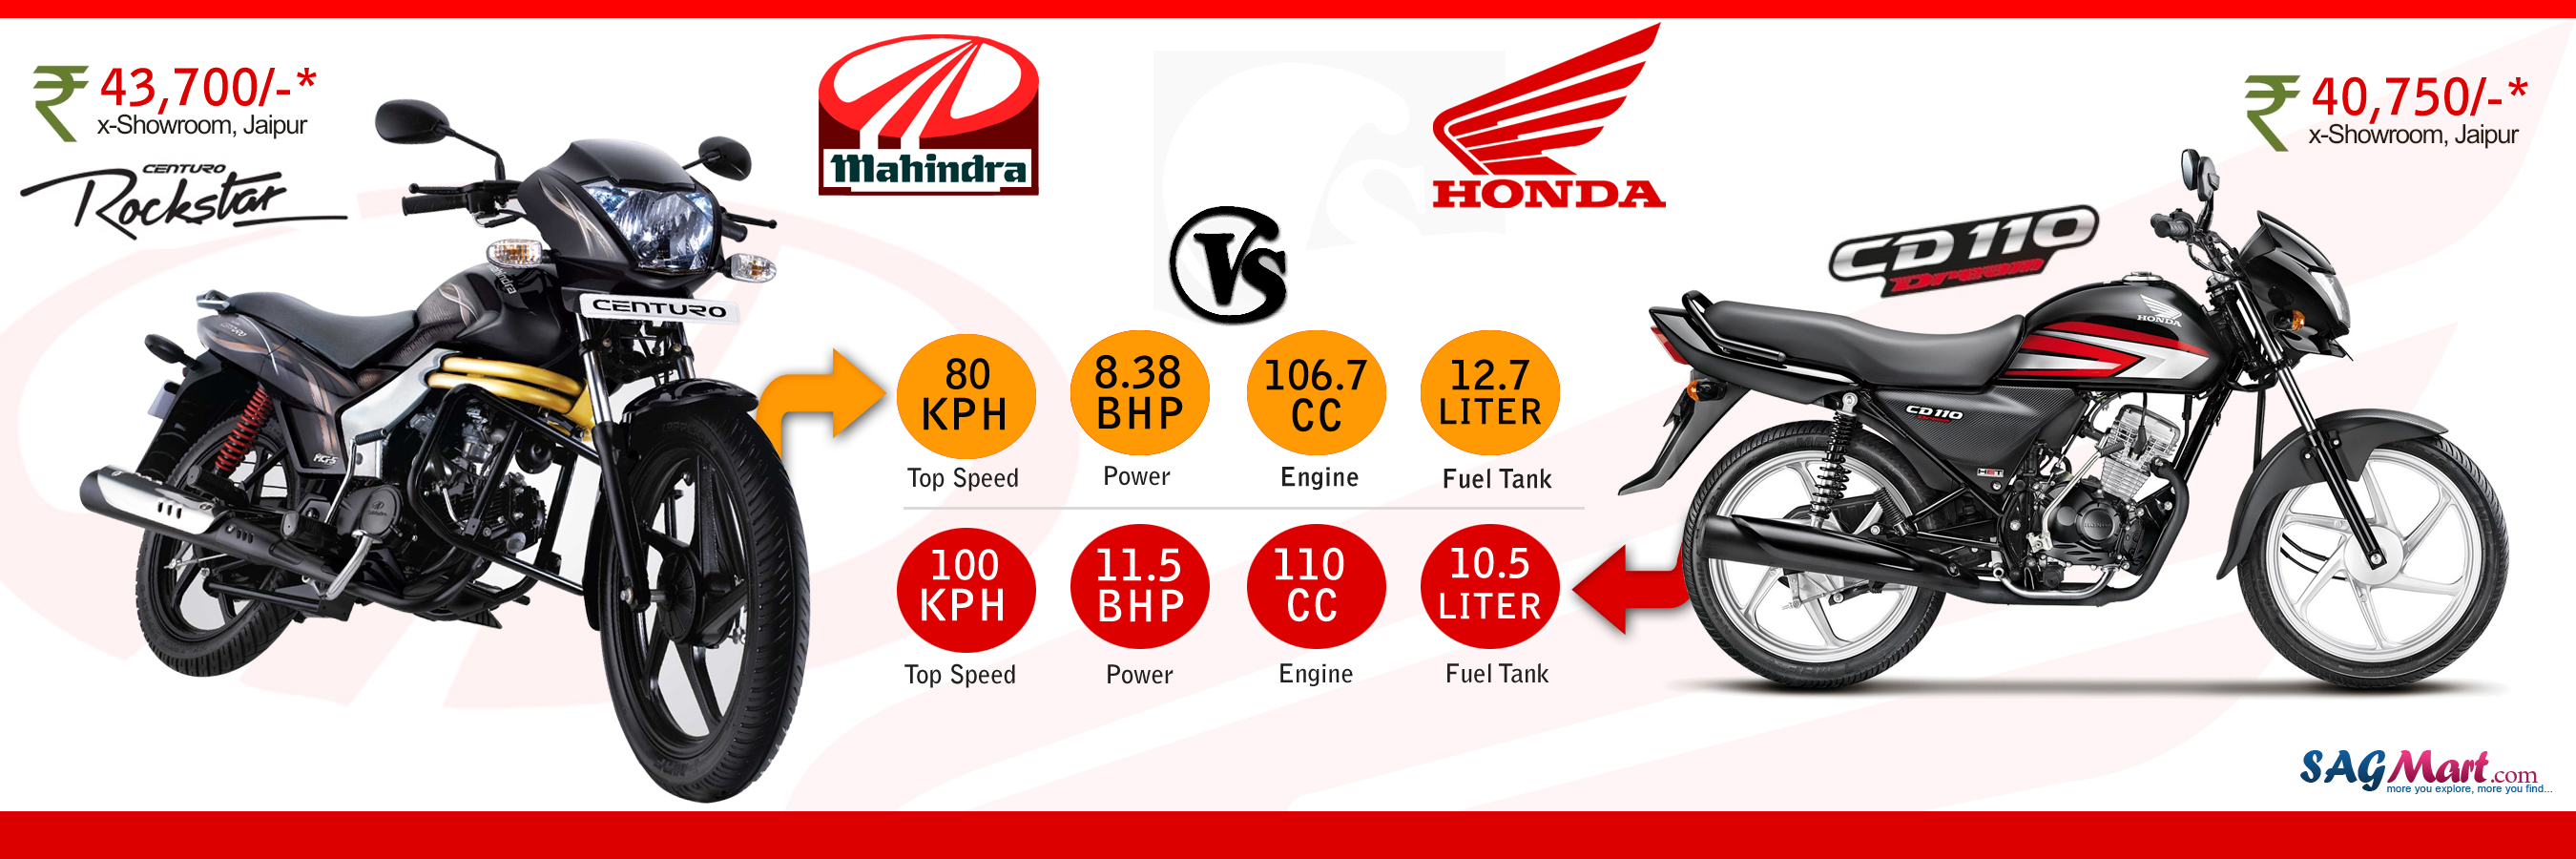 Mahindra Centuro Rockstar Vs Honda Cd 110 Dream Sagmart